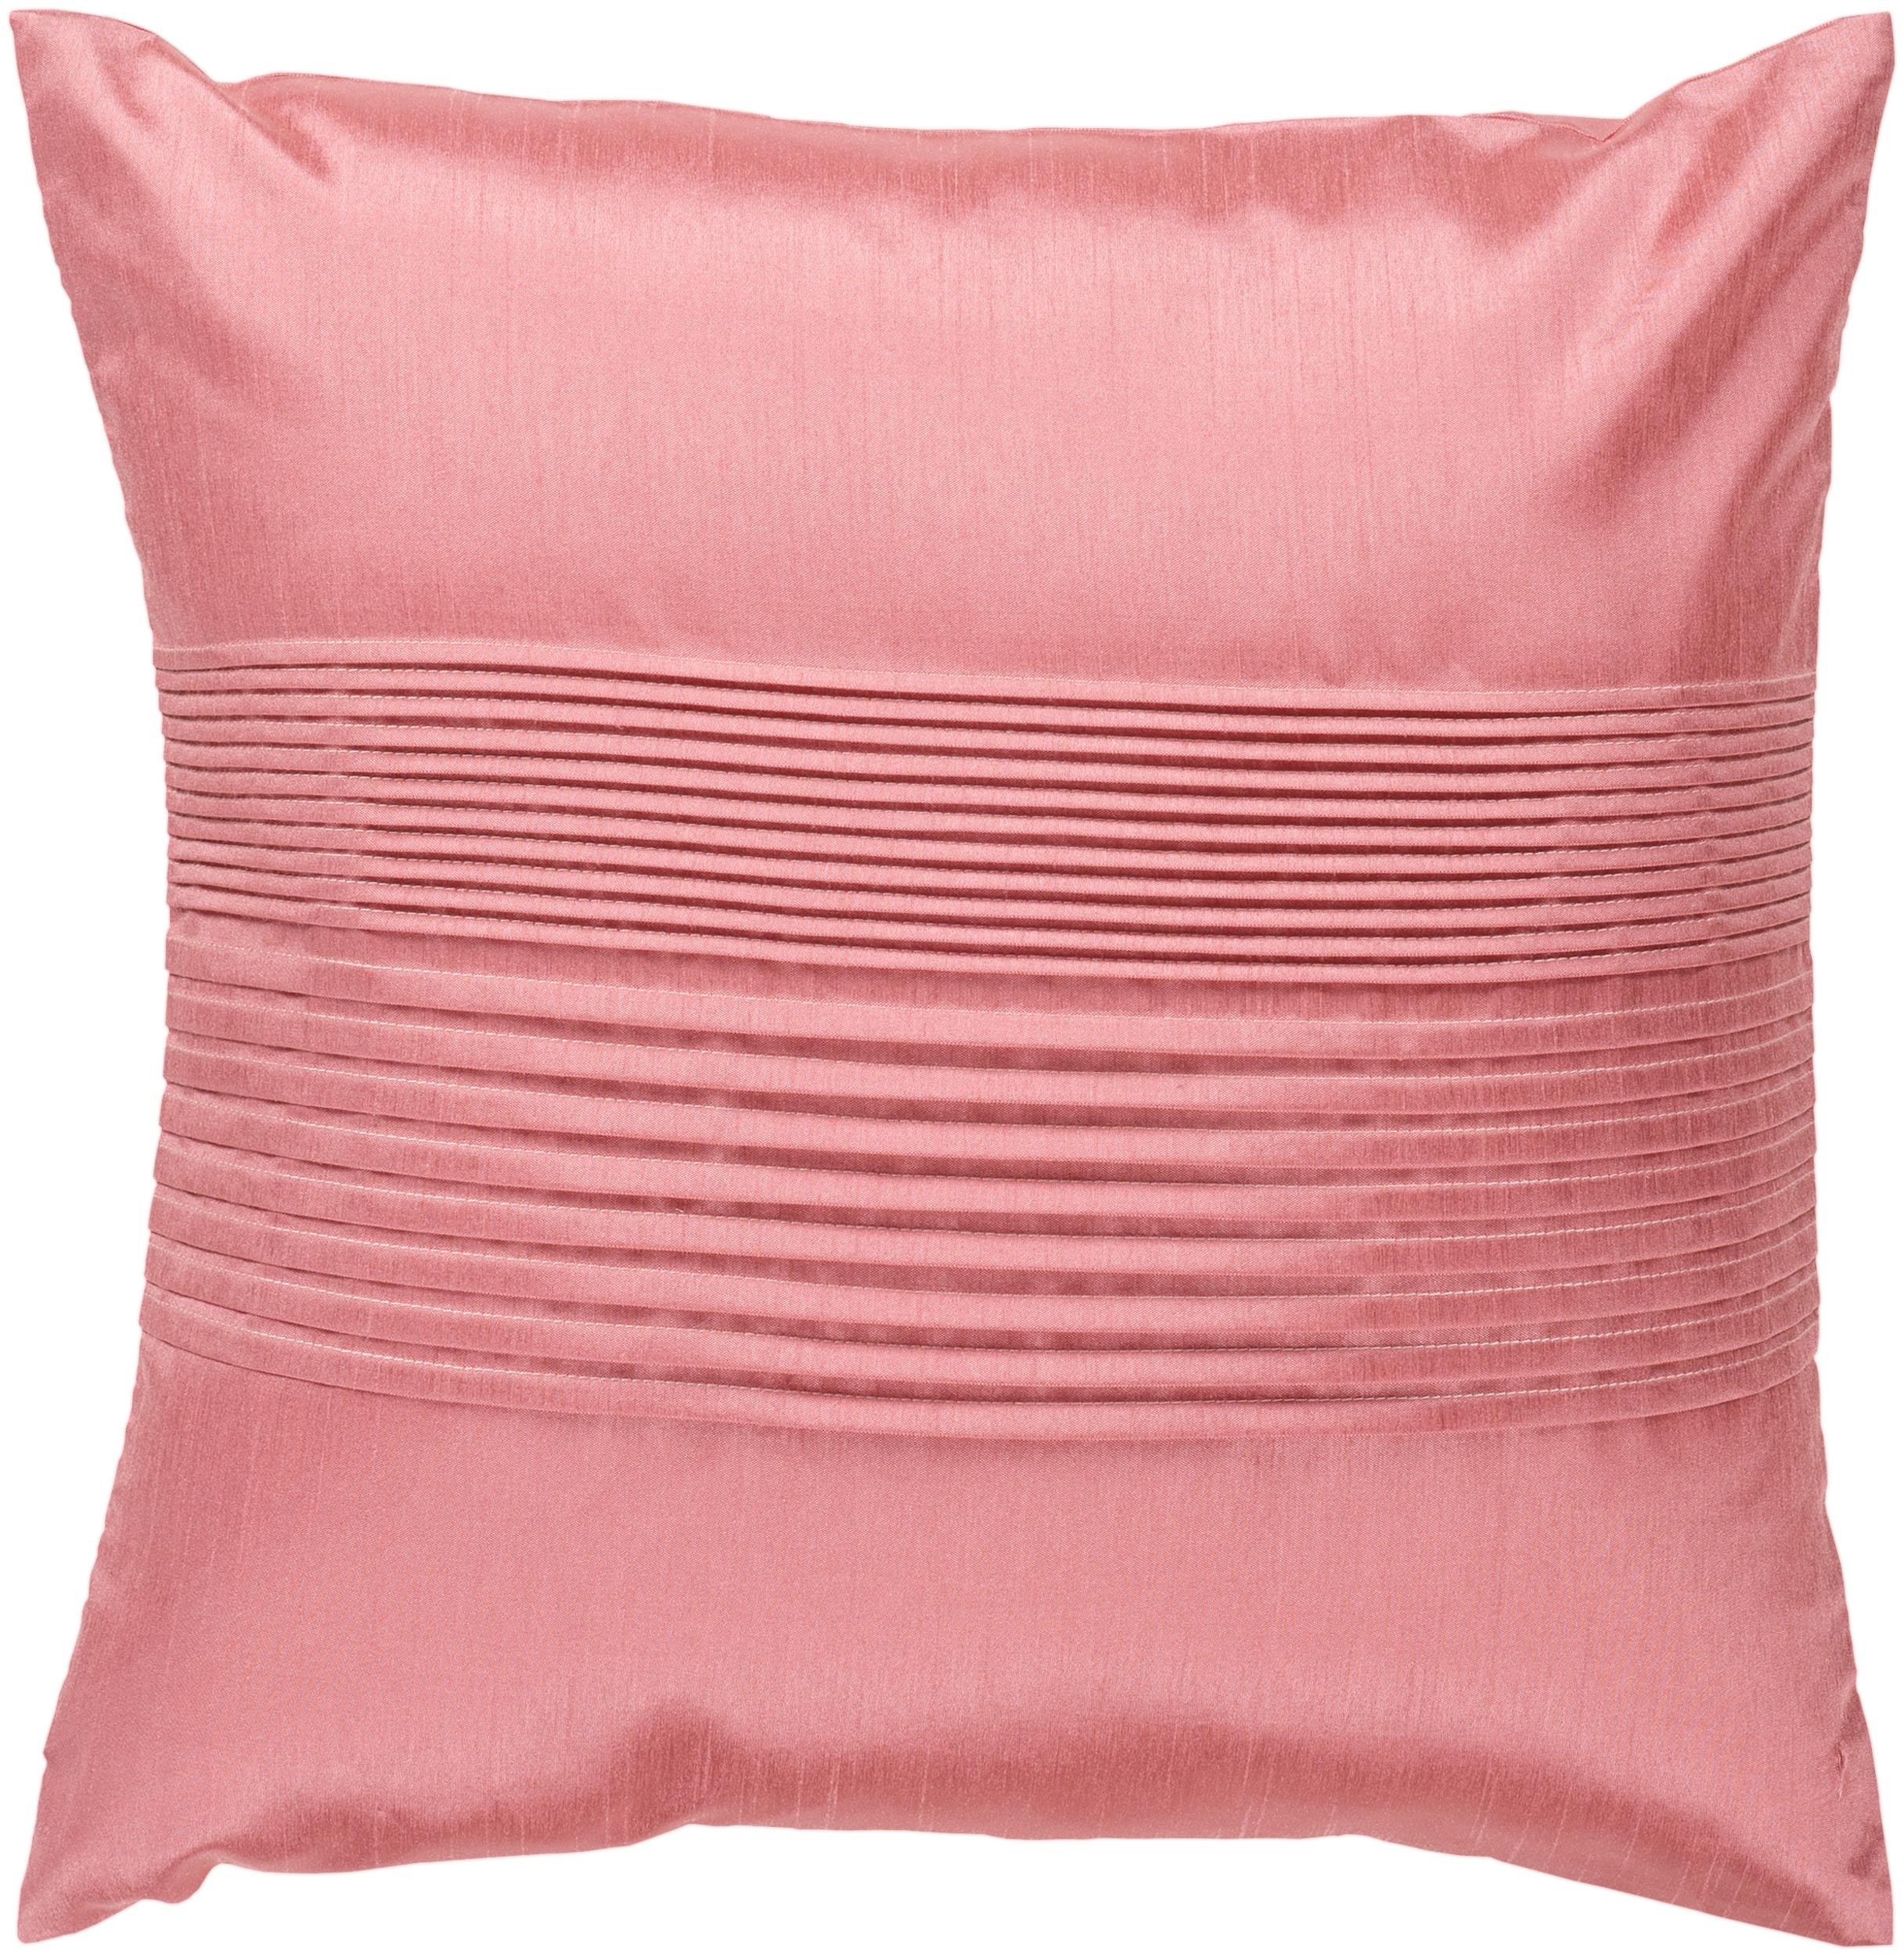 "Surya Pillows 18"" x 18"" Pillow - Item Number: HH023-1818P"